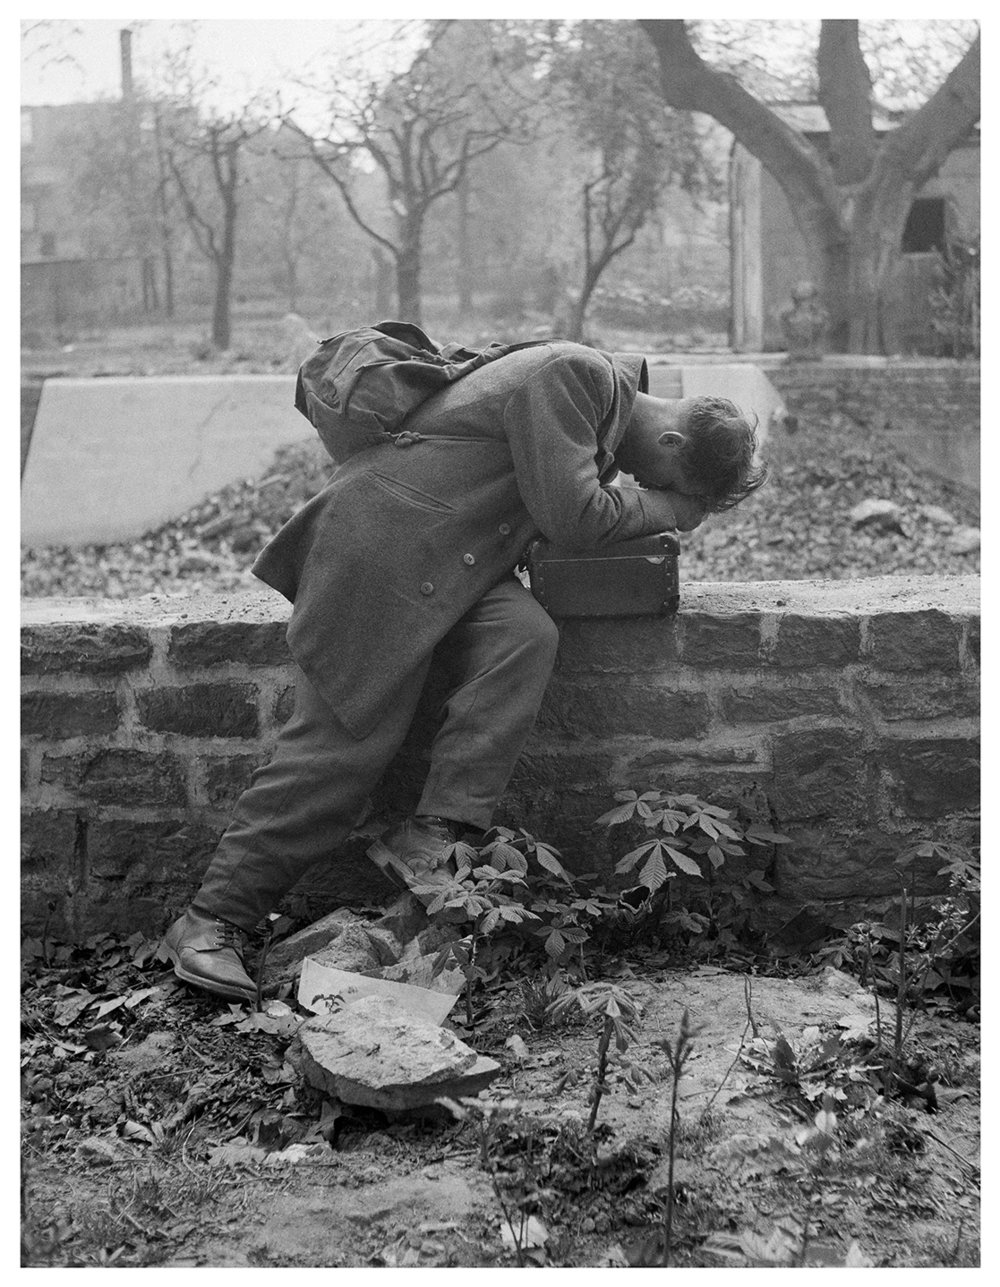 Tony Vaccaro,  Defeated Soldier,  1947. Courtesy of Tony Vaccaro/Getty Images Gallery and Monroe Gallery of Photography